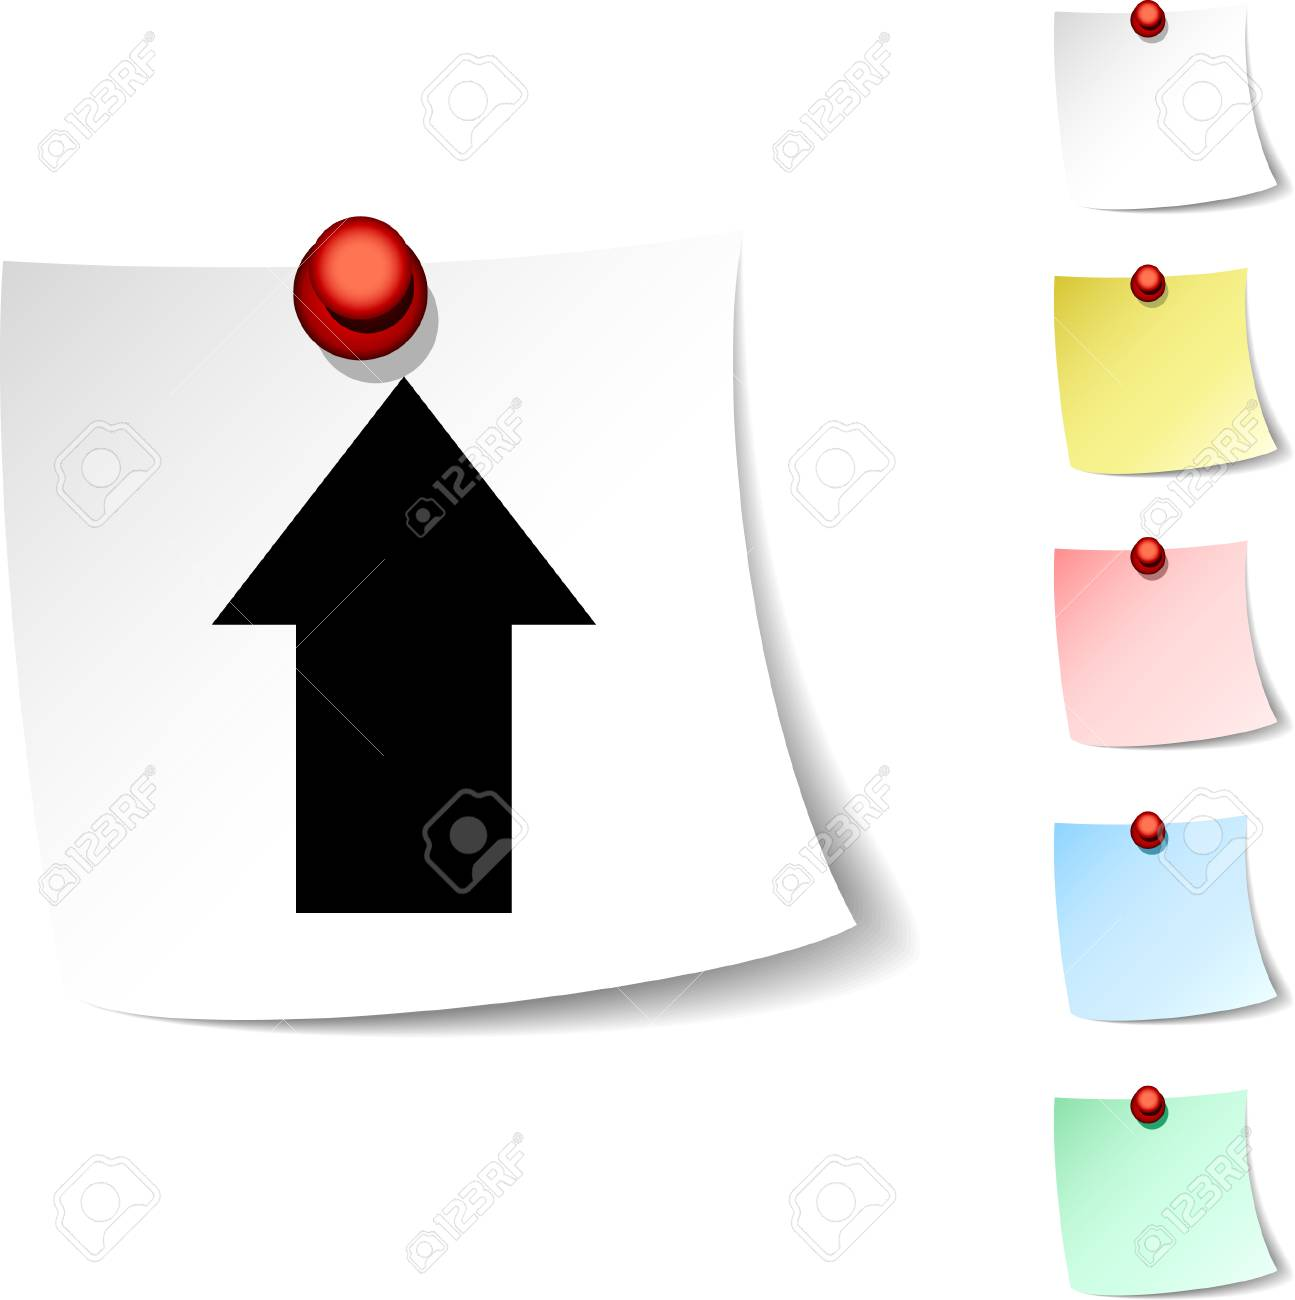 Upload sheet icon. Vector illustration. Stock Vector - 5560258